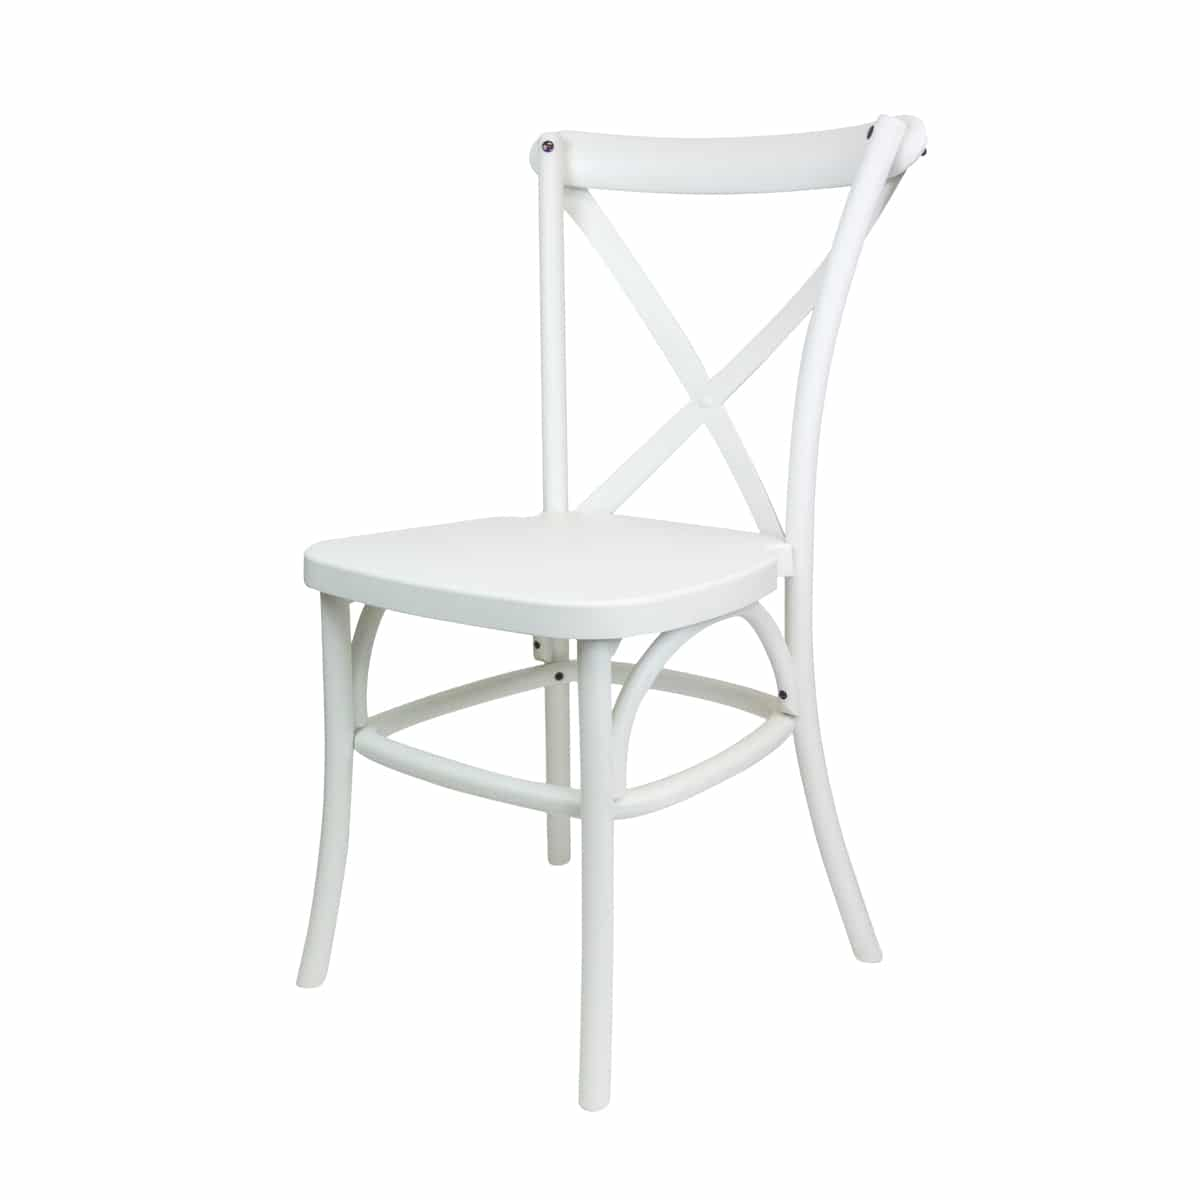 cheap chair covers adelaide southwest dining chairs cross back a simple yet stylish seating solution